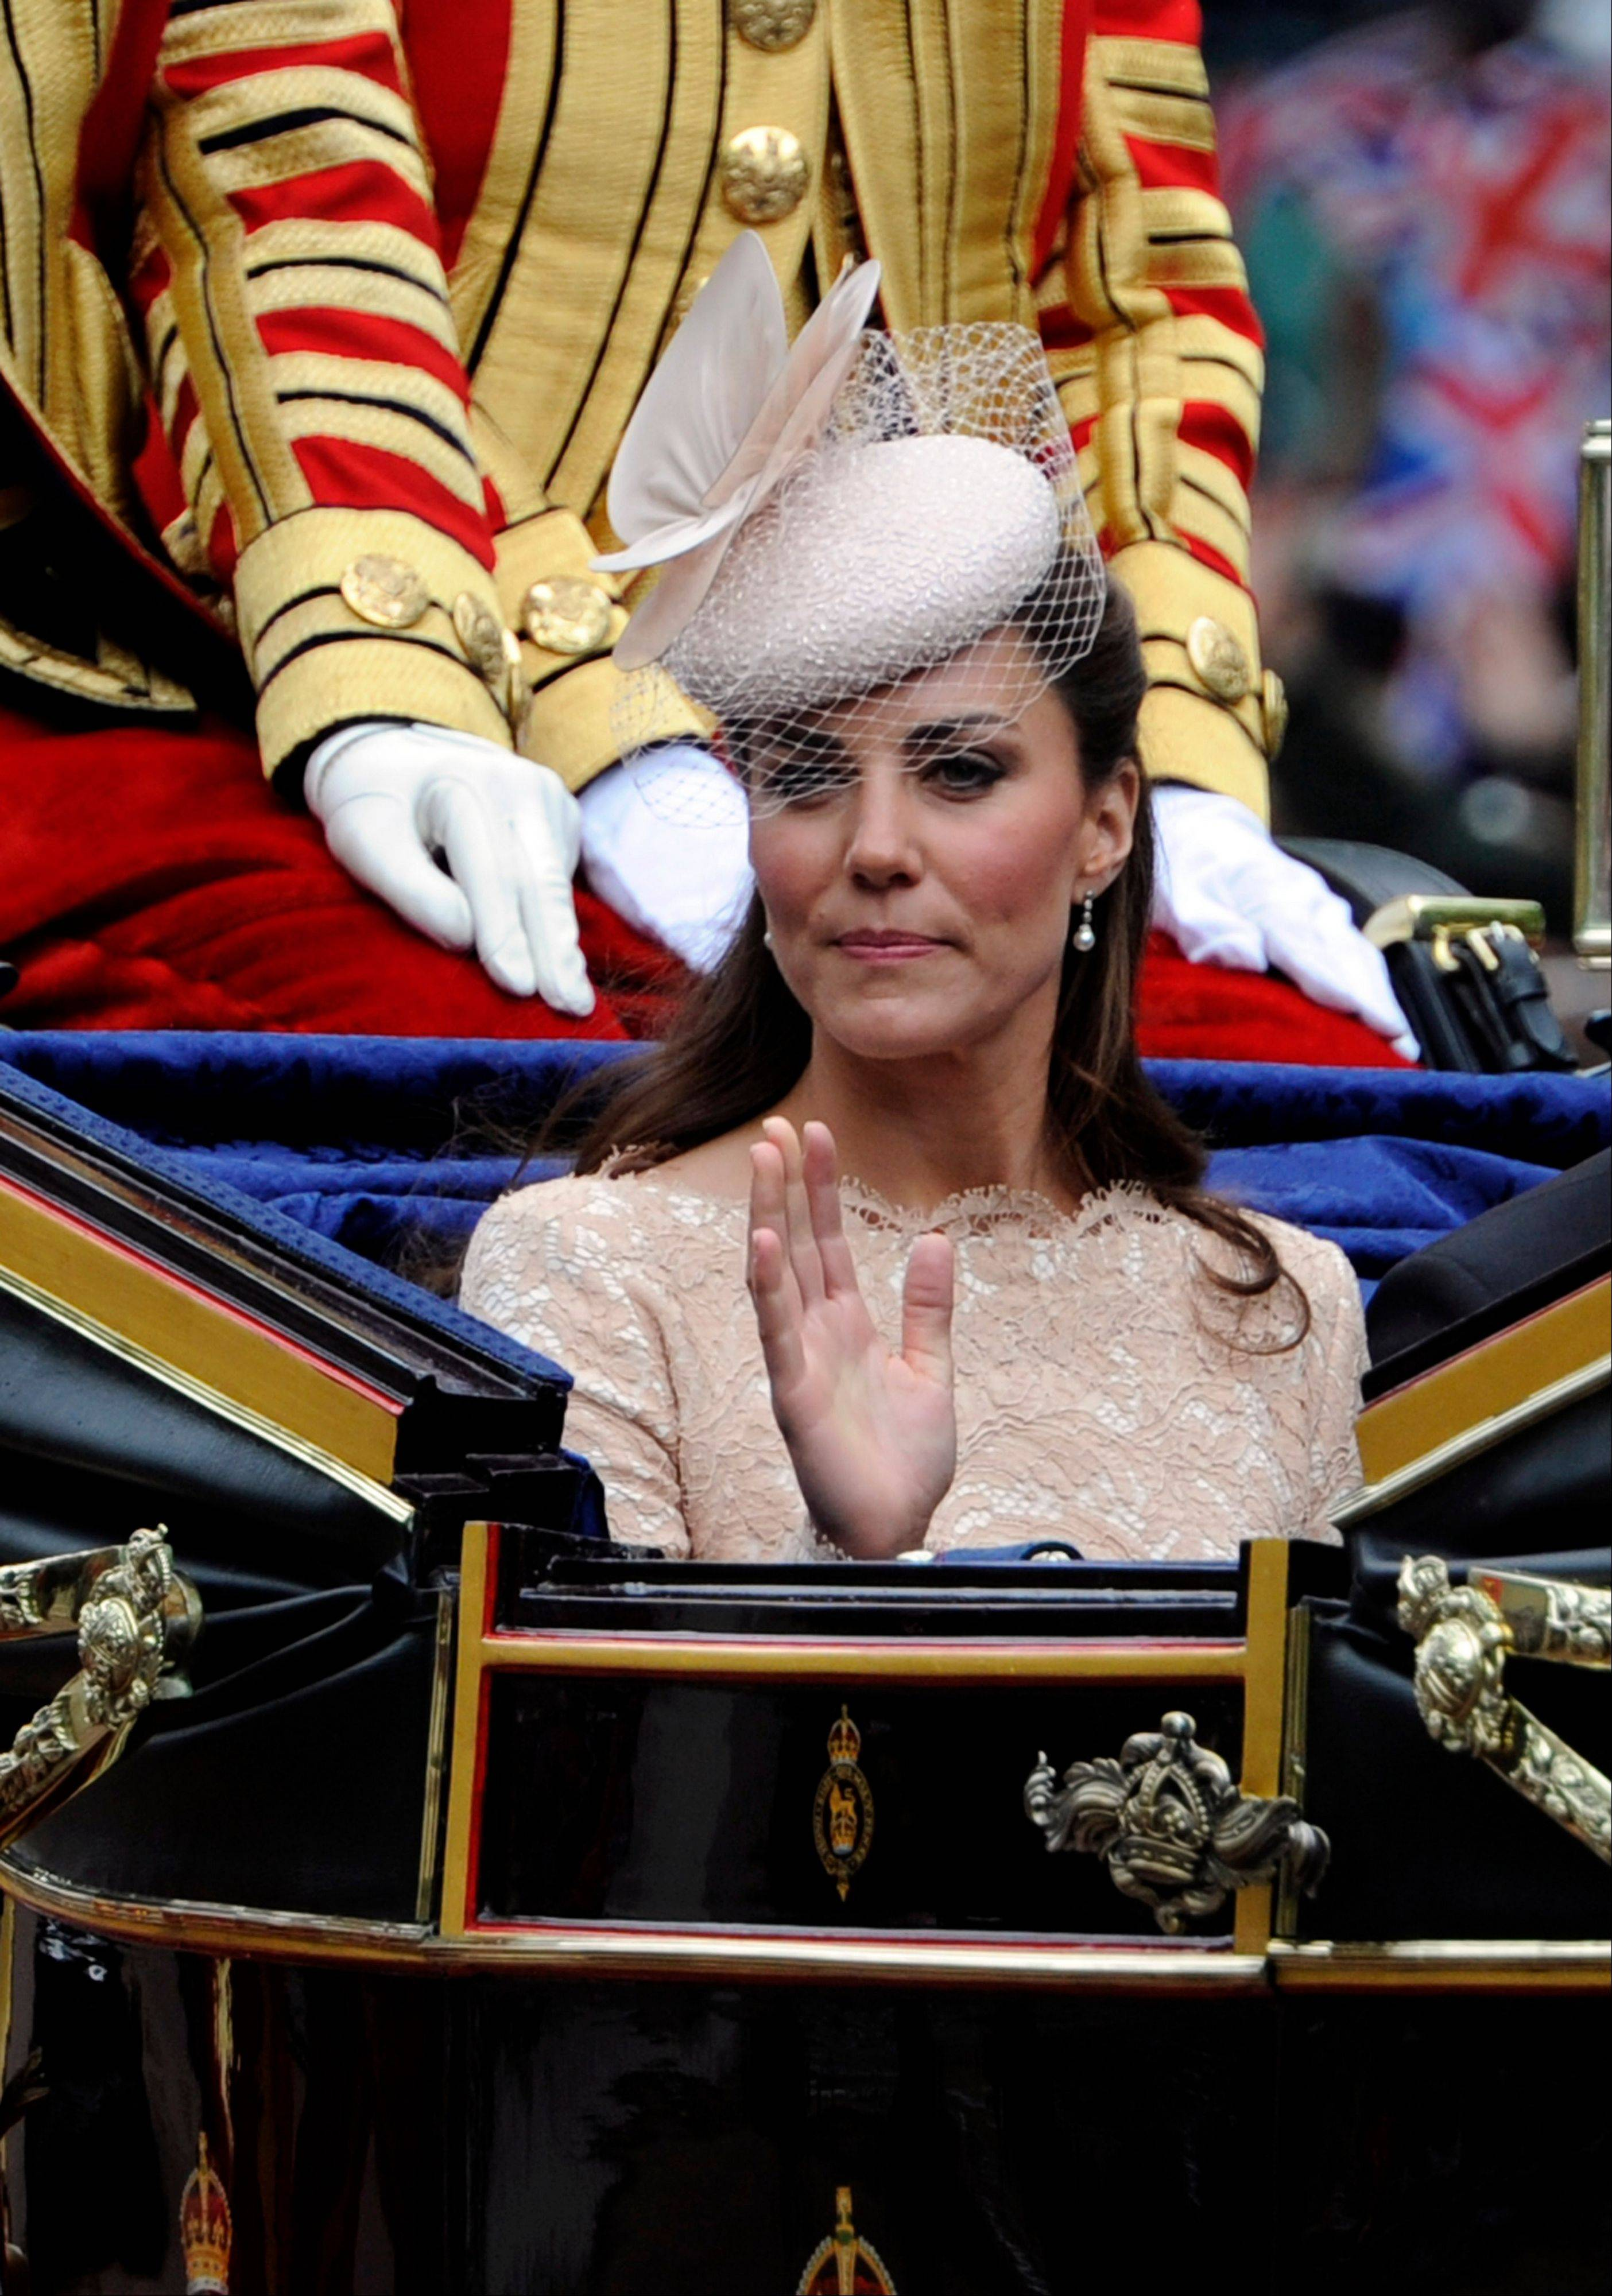 Kate Duchess of Cambridge waves as she passes along The Mall as part of a four-day Diamond Jubilee celebration to mark the 60th anniversary of Queen Elizabeth II accession to the throne, London, Tuesday, June, 5, 2012.